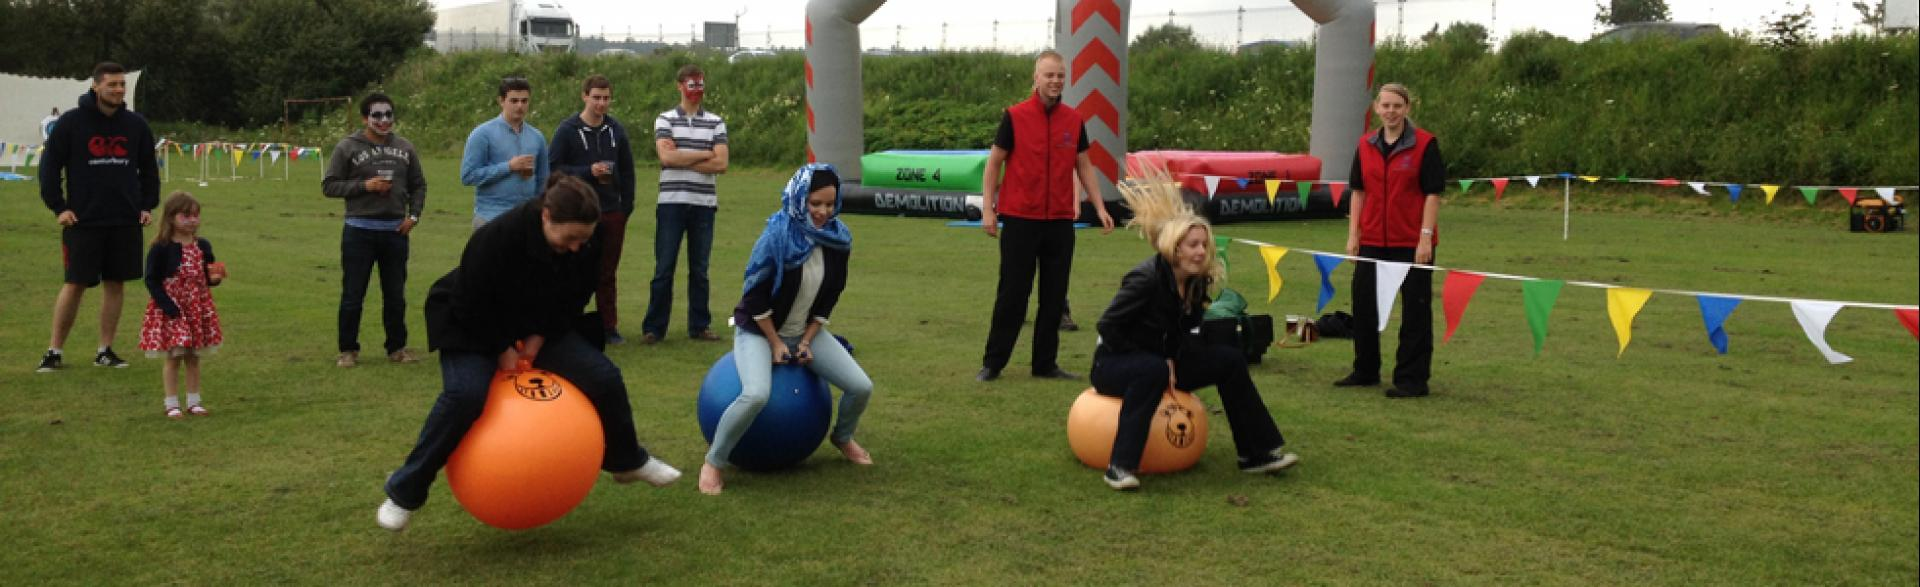 Corporate Fun Day with Ernst & Young, Aberdeen, June 2014